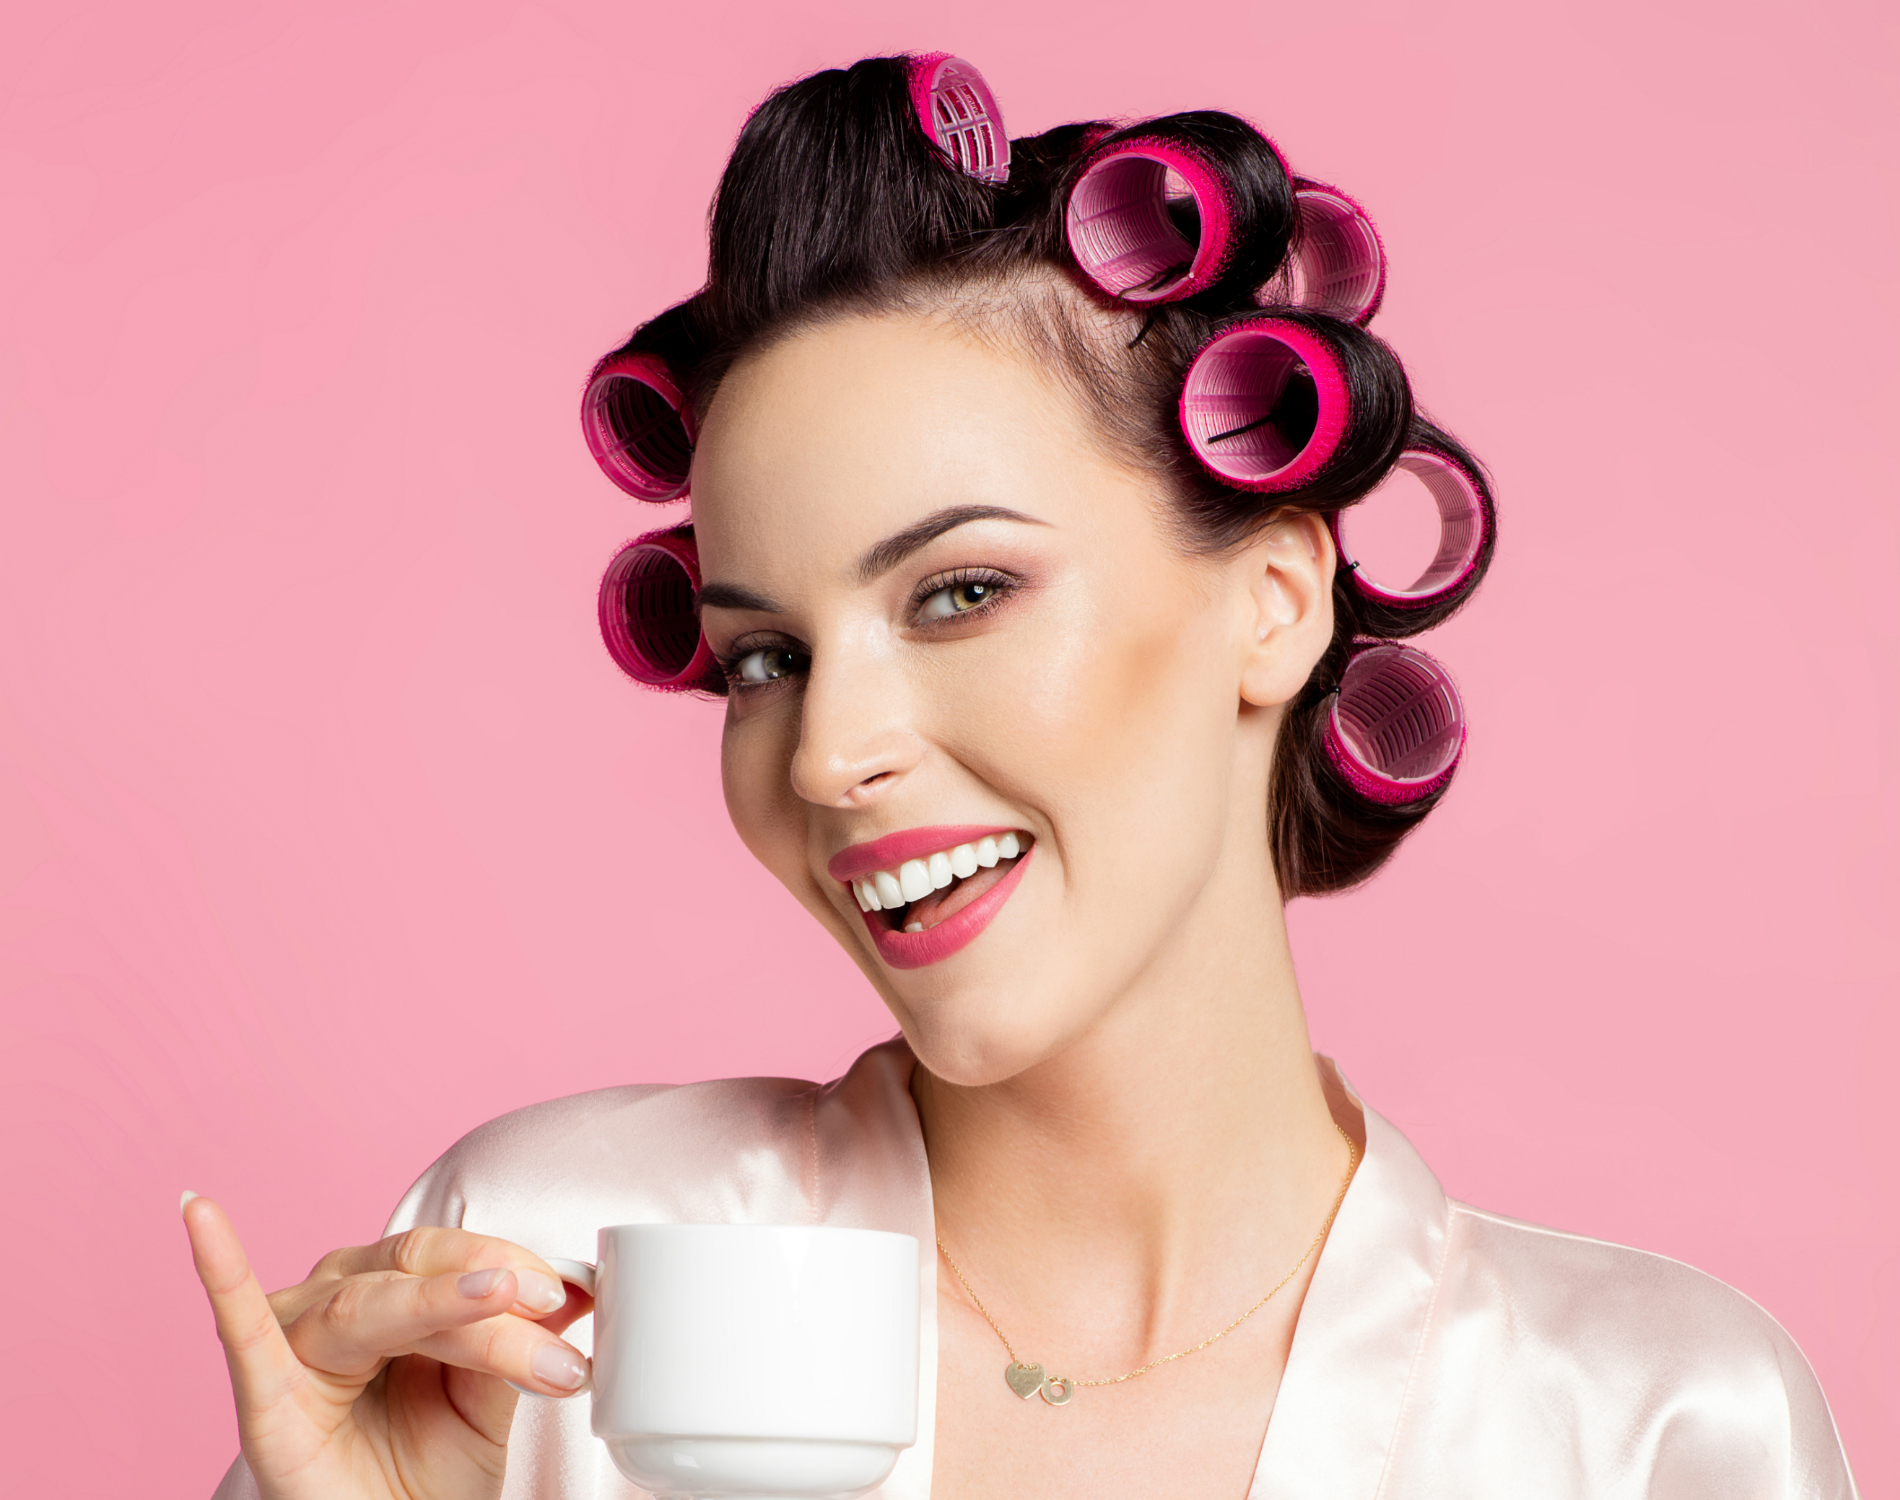 HOW TO USE HOT HAIR ROLLERS?